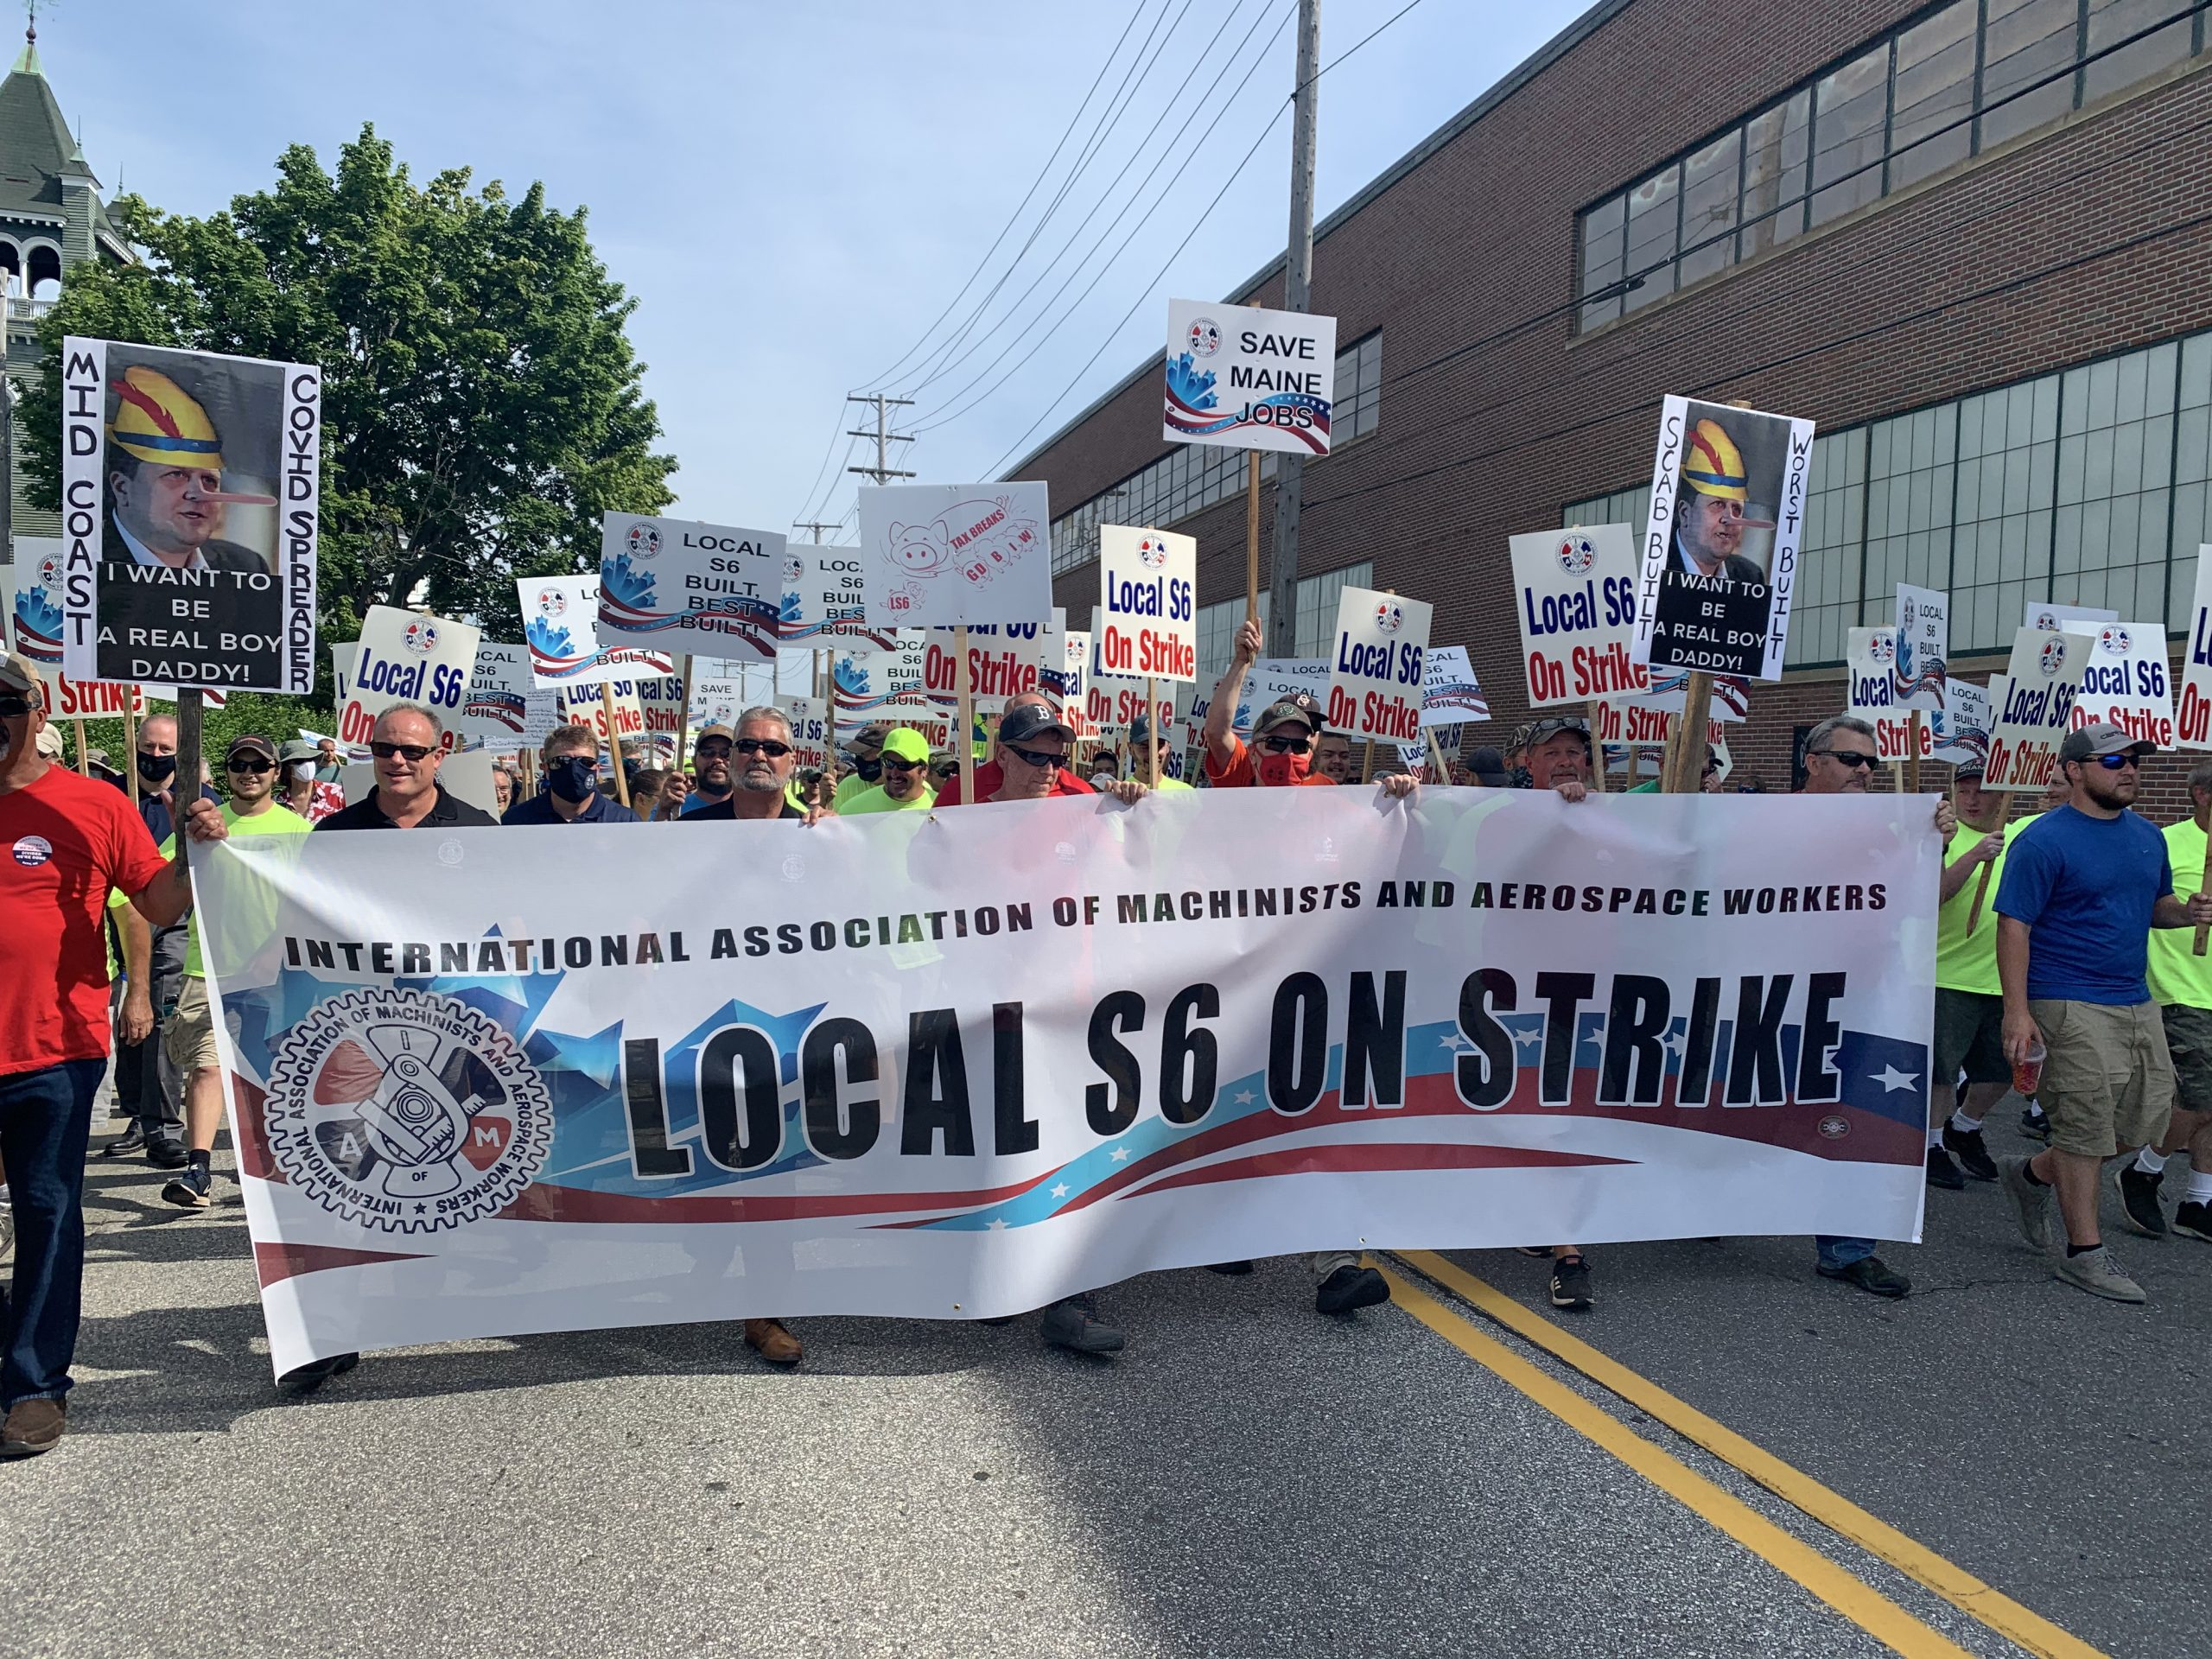 Members of Congress Ratchet Up Pressure on Bath Iron Works to Resolve Local S6 Shipbuilder Strike